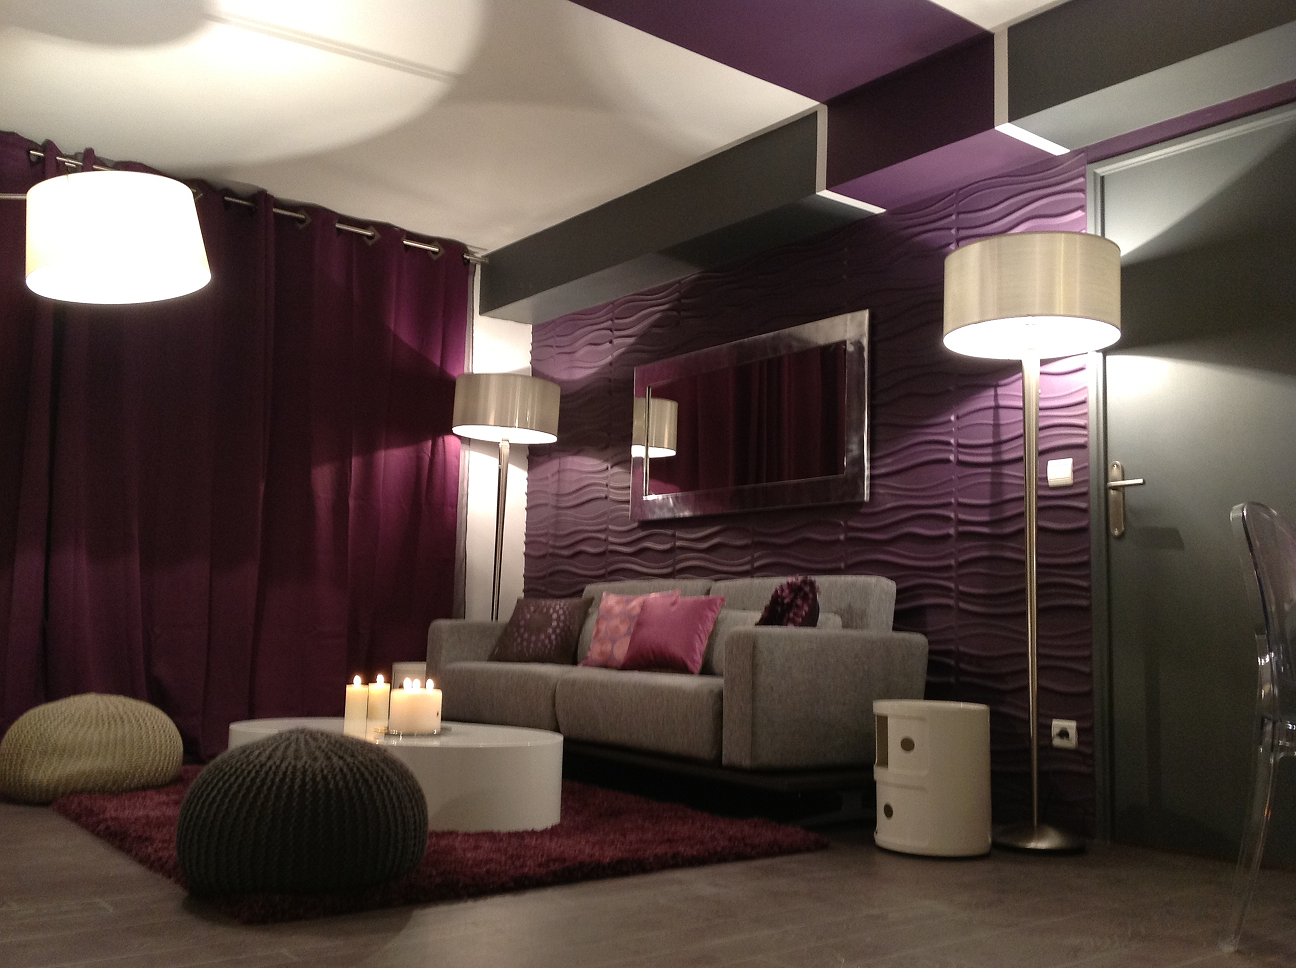 d co salon violet gris deco salon s jour pinterest d co salon salon et deco. Black Bedroom Furniture Sets. Home Design Ideas